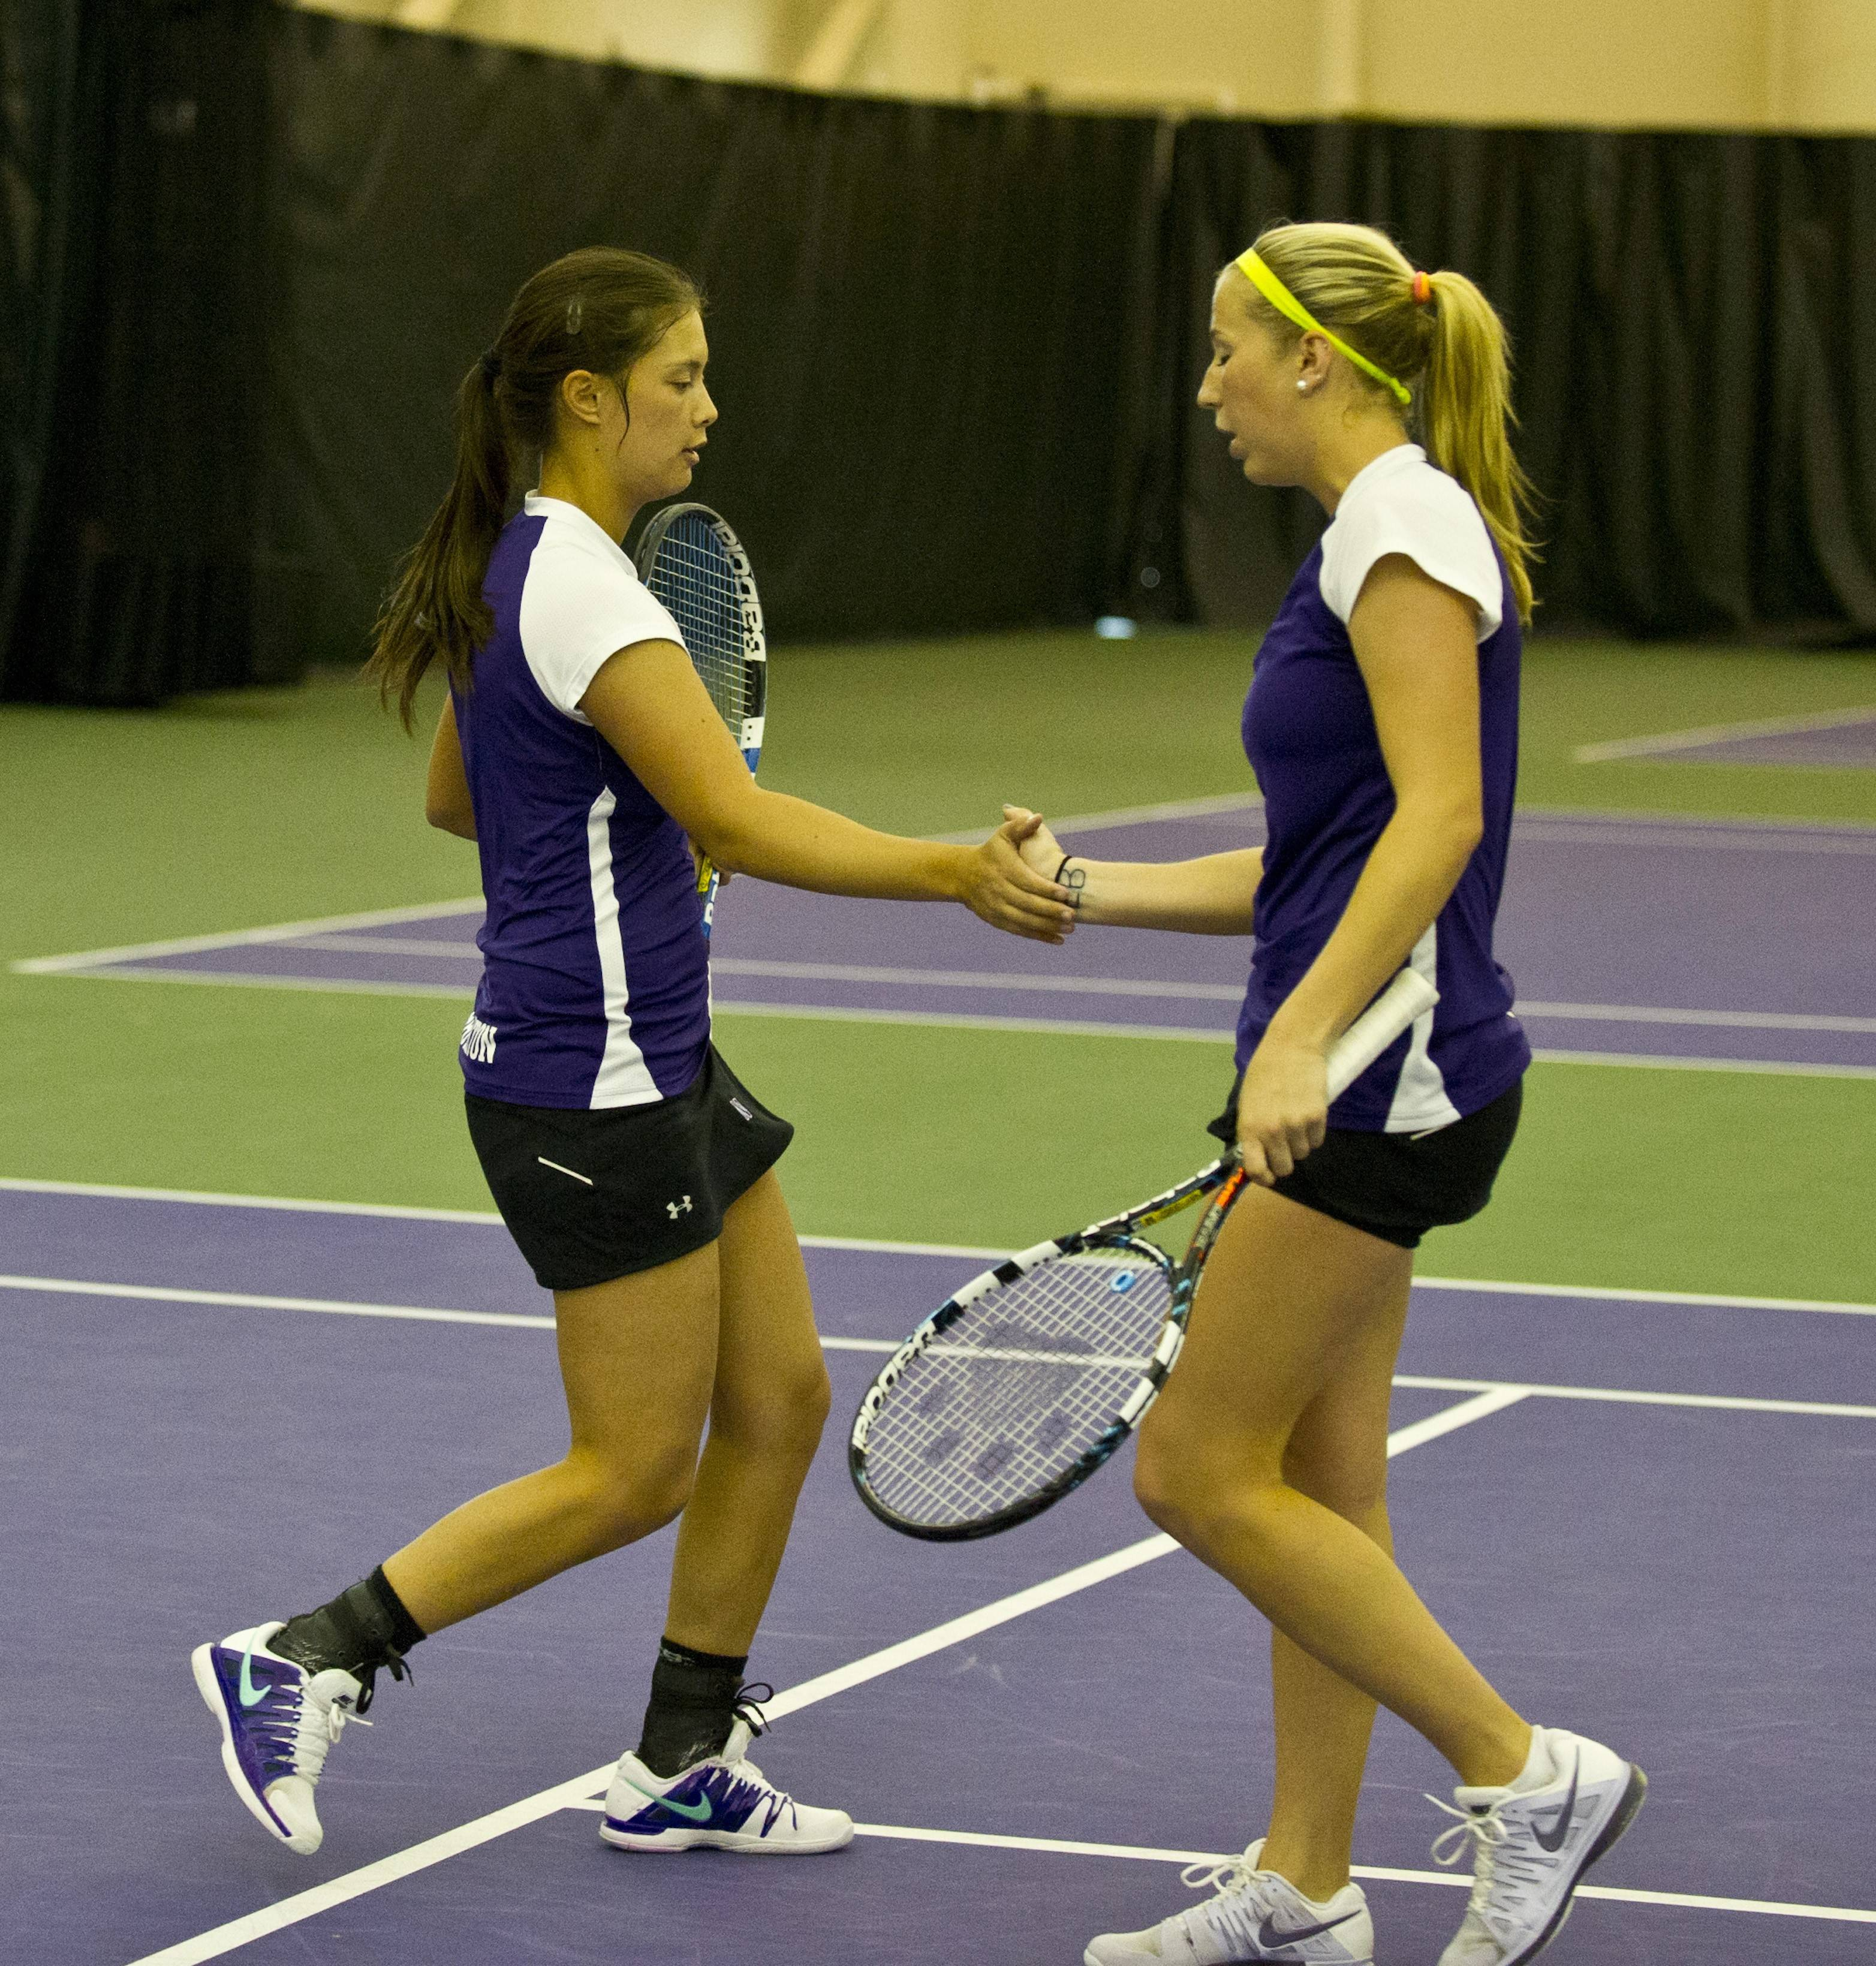 Northwestern University women's tennis team features two former suburban stars, Nida Hamilton of Hinsdale Central (left) and Maddie Lipp of Lake Forest.